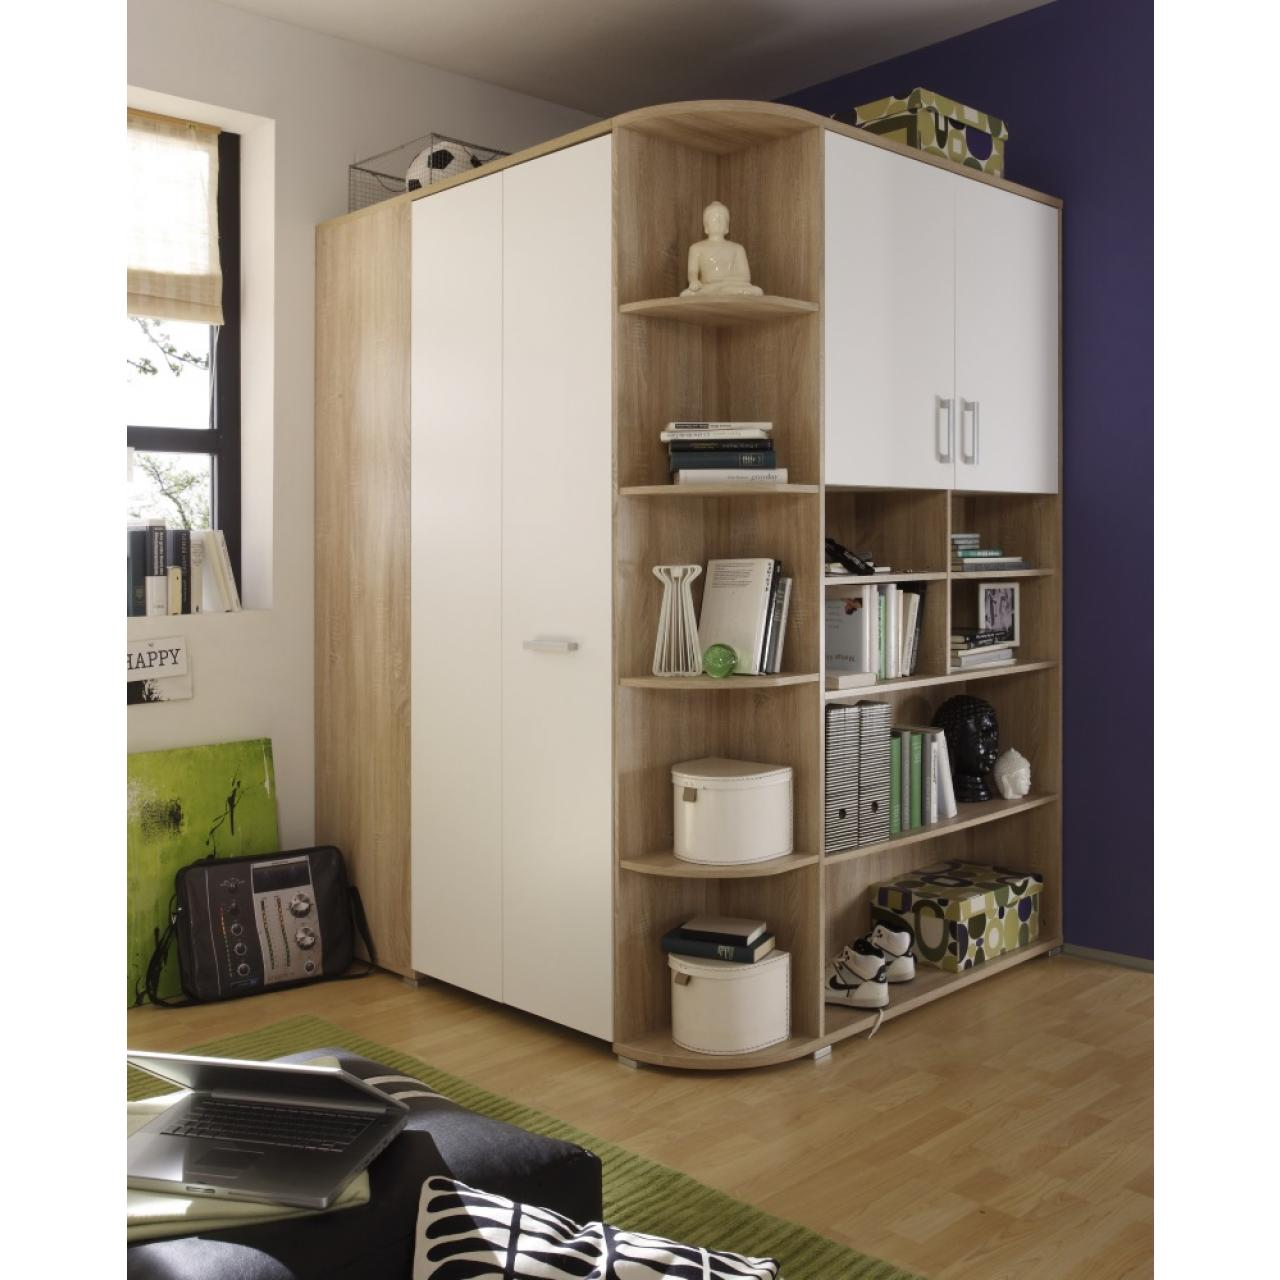 kleiderschrank victor 2 wei beton schwebet ren. Black Bedroom Furniture Sets. Home Design Ideas